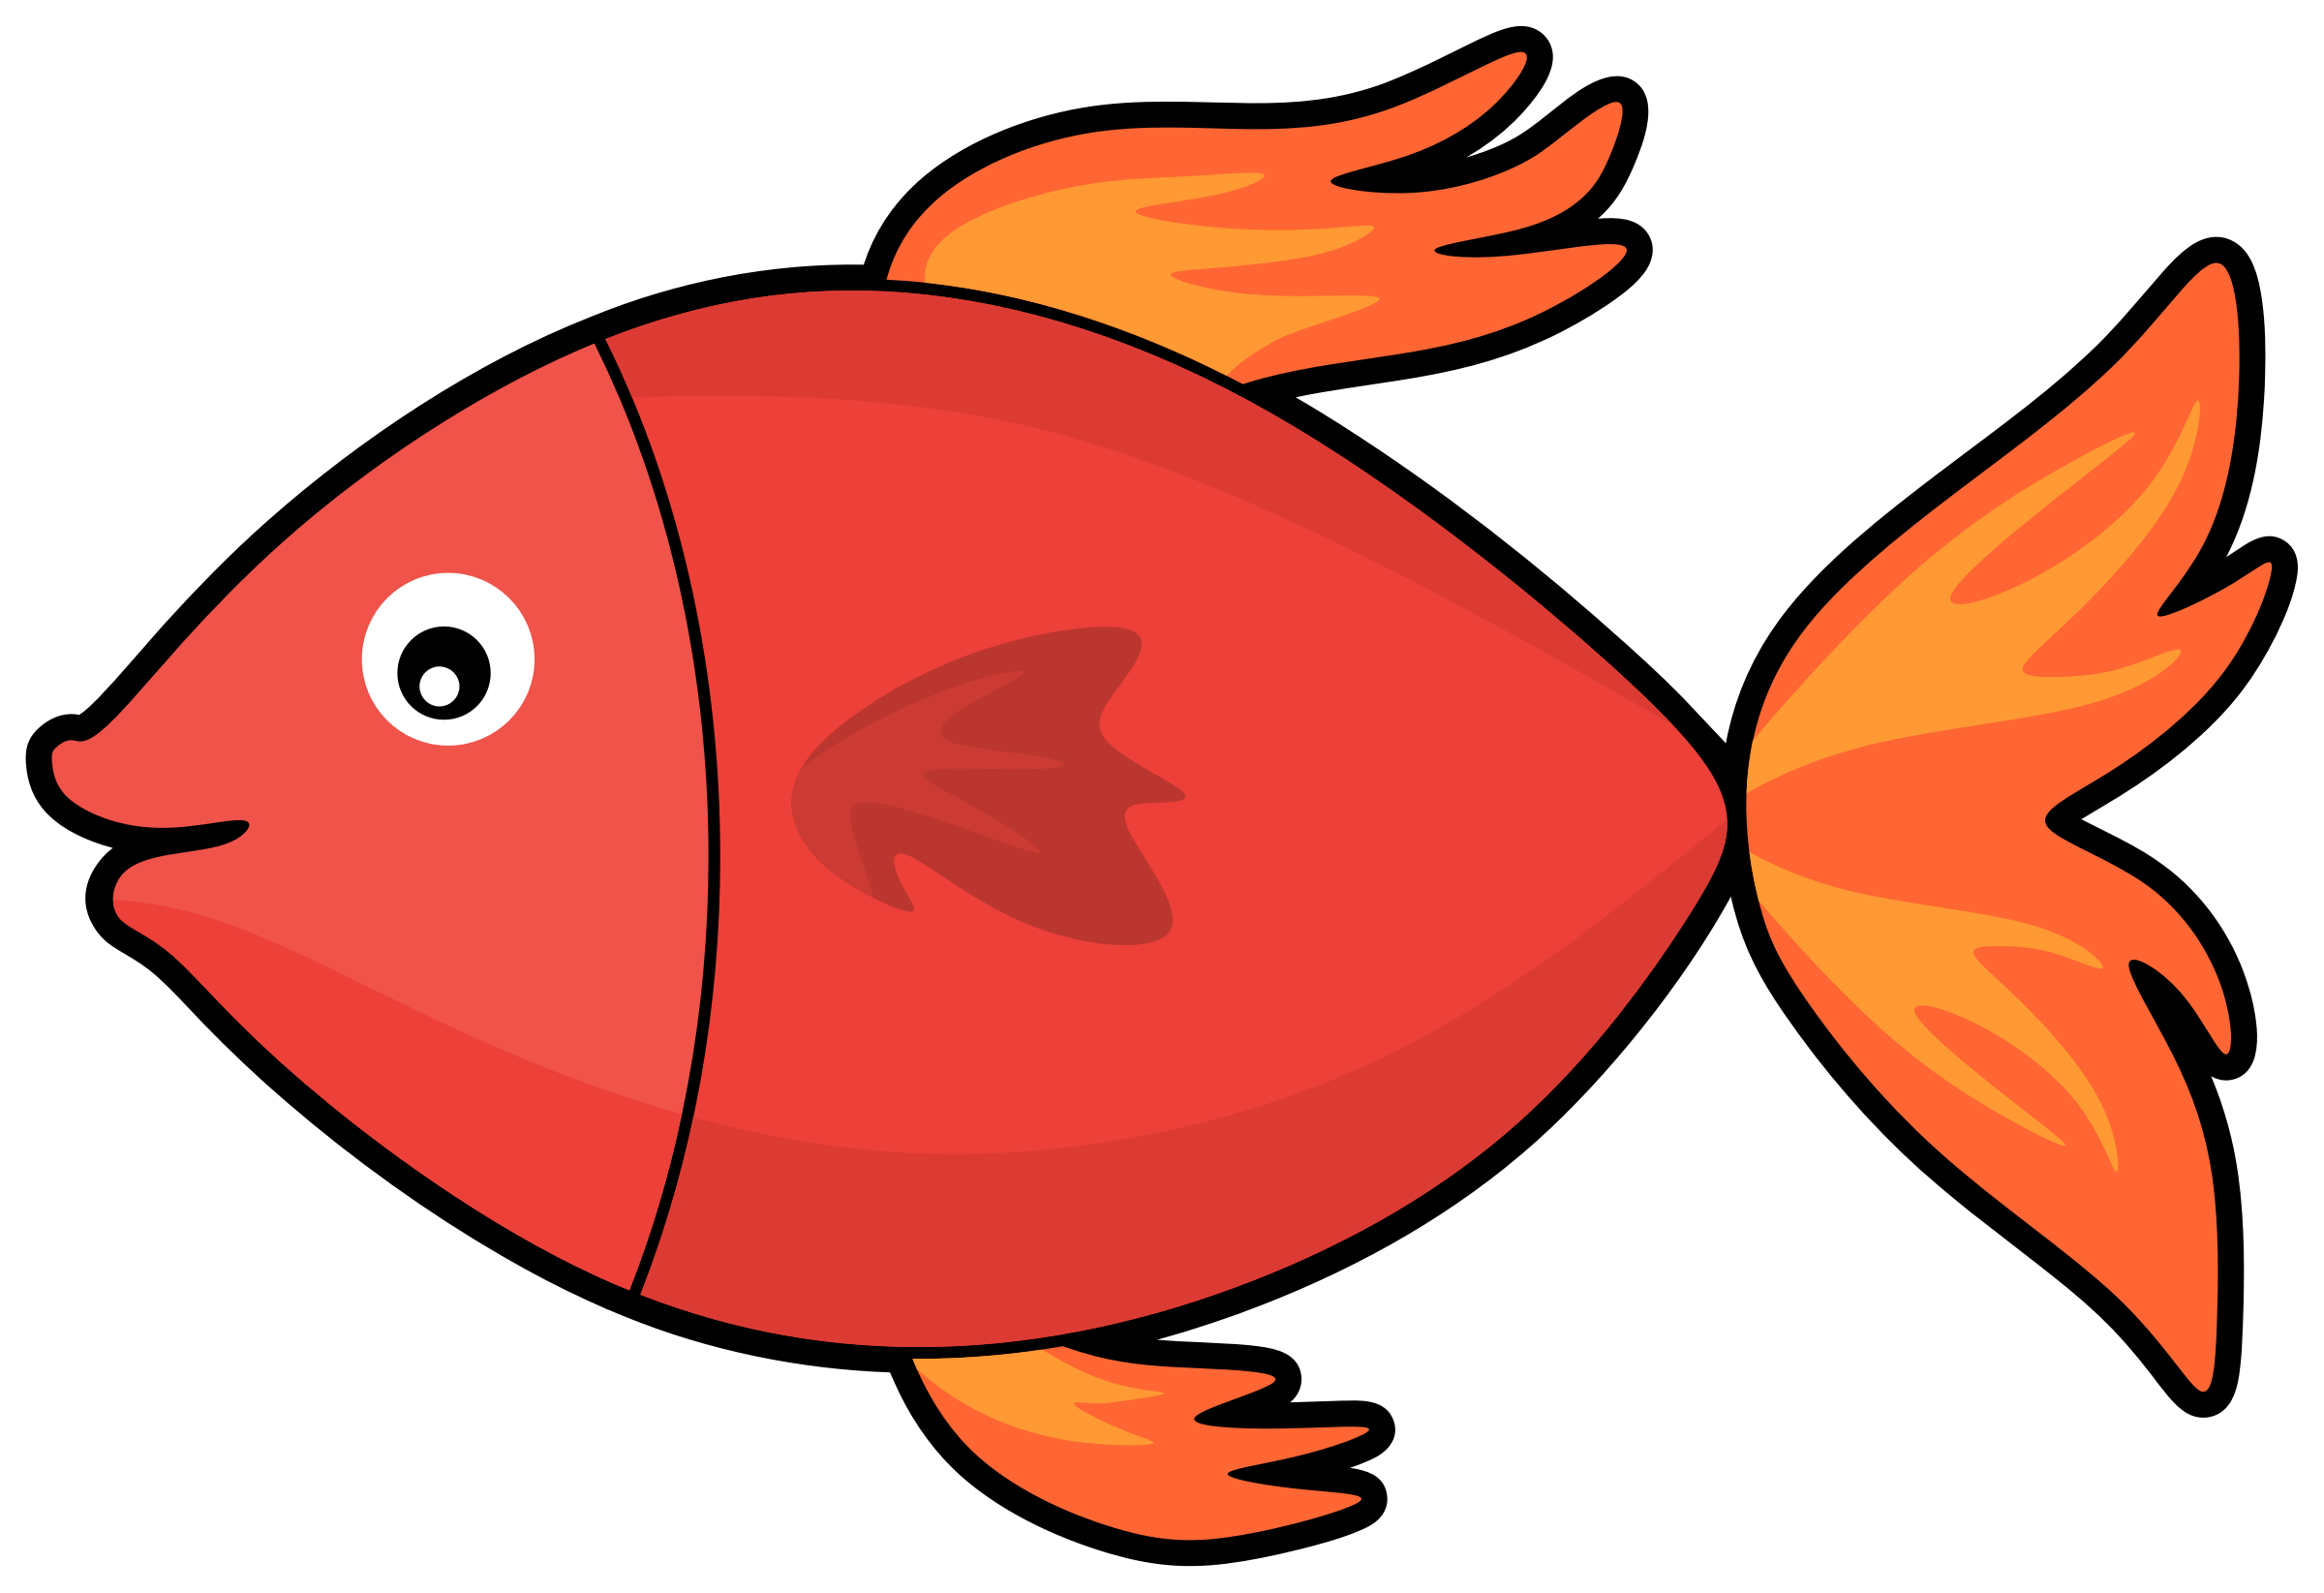 Fish pictures clipart. Butterfly at getdrawings com